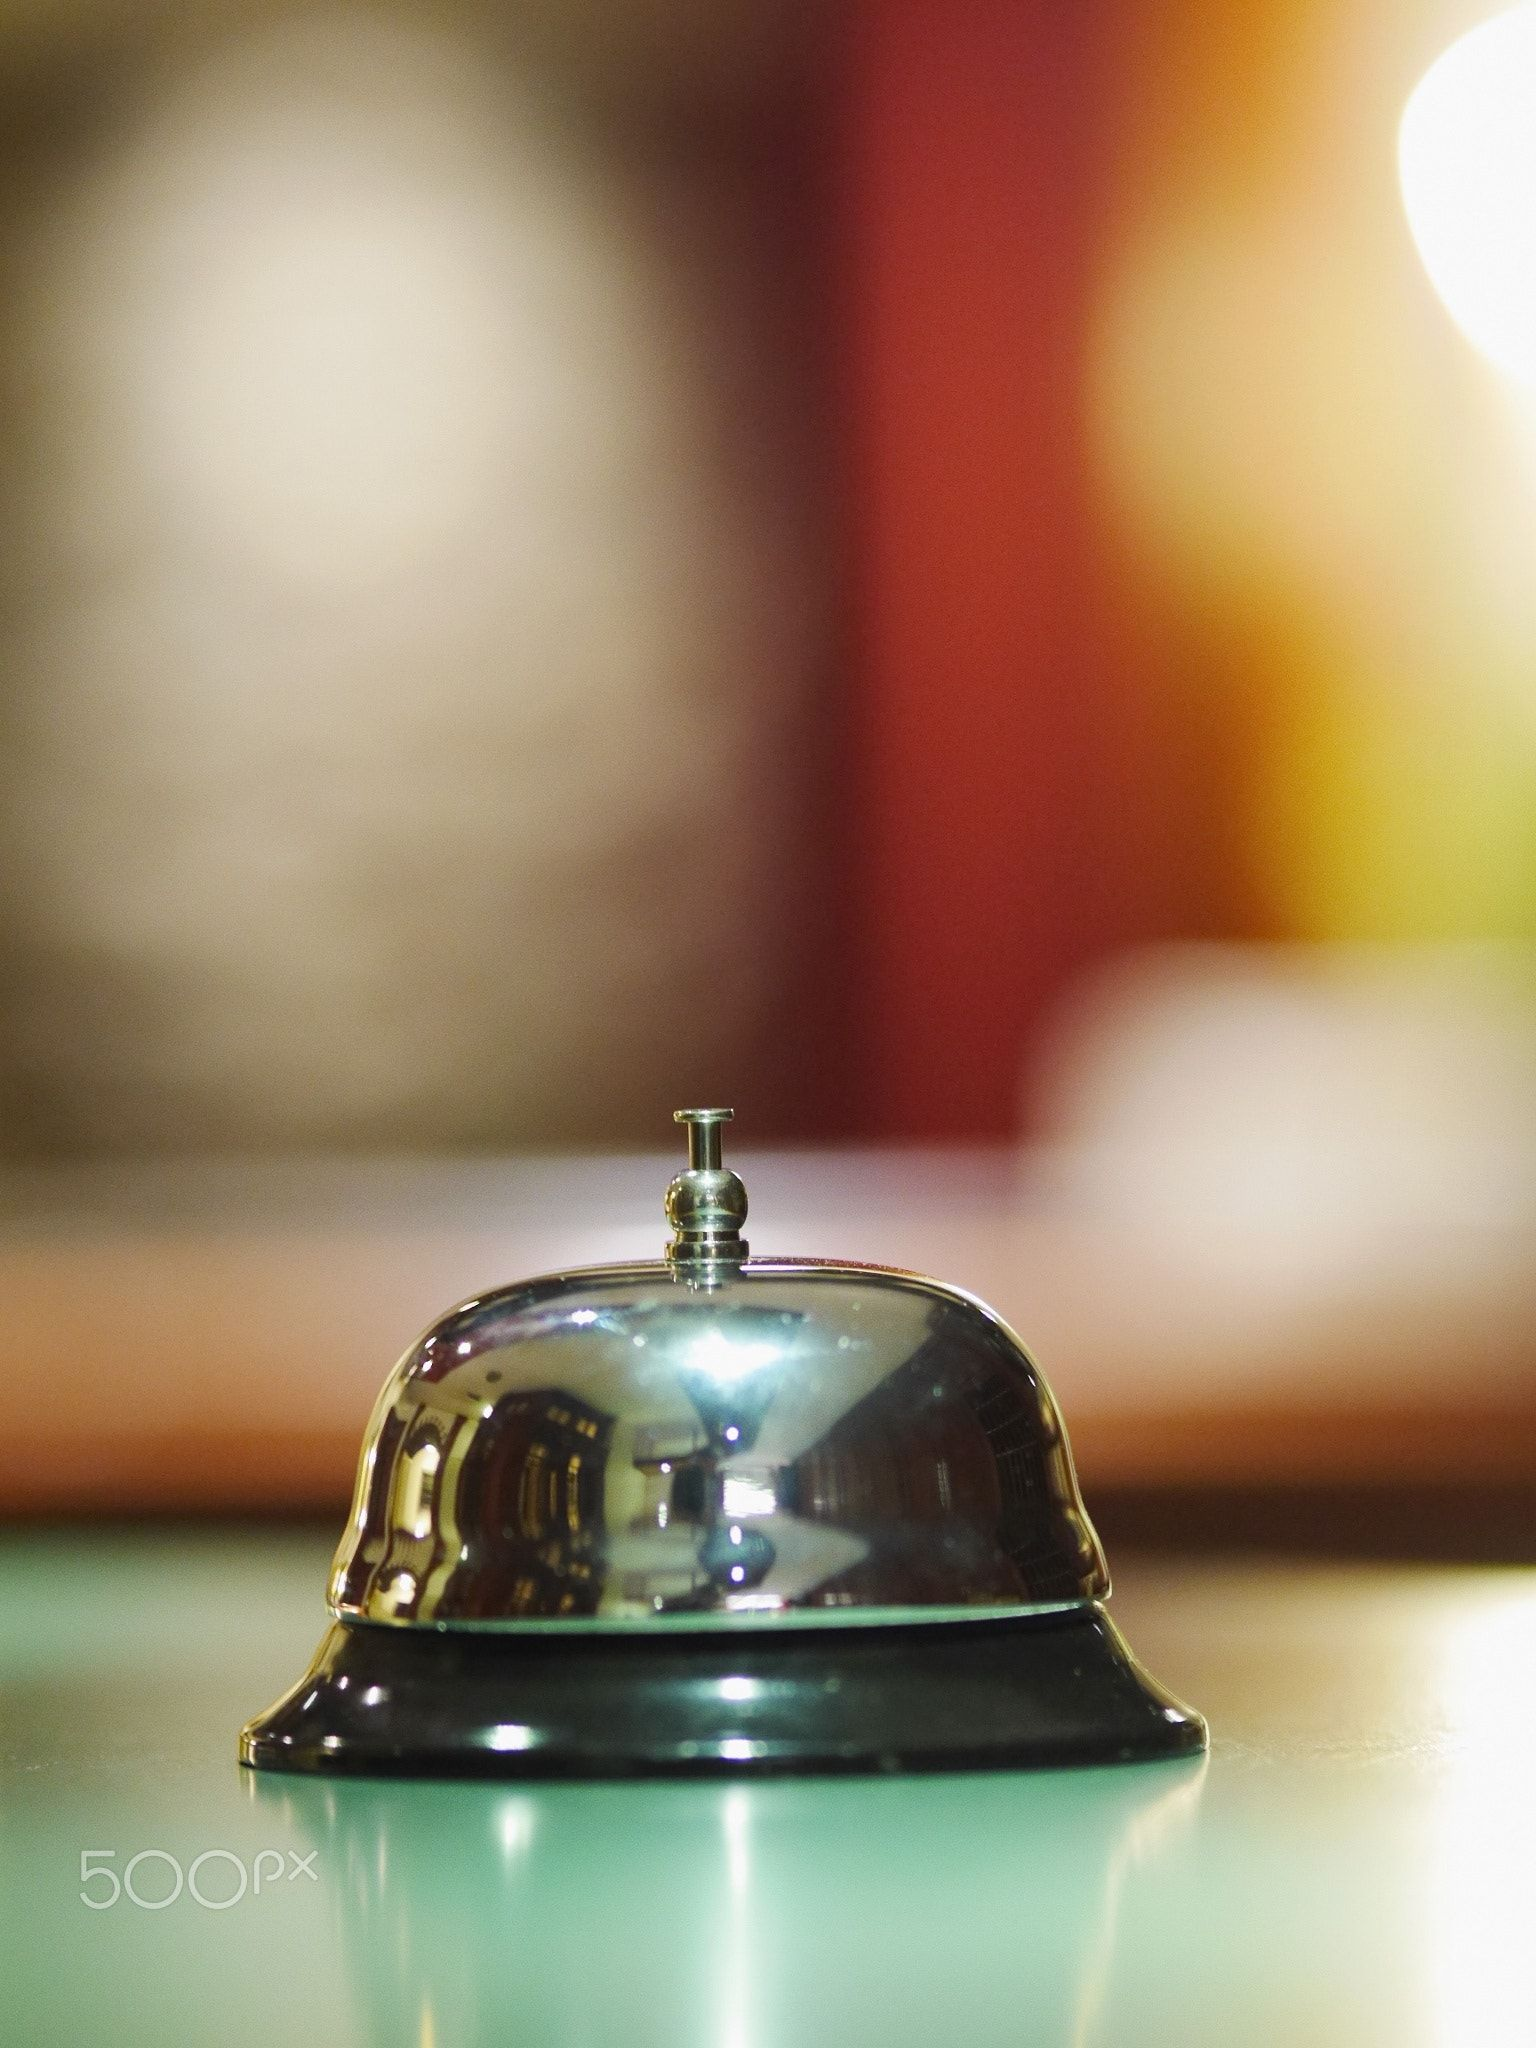 hotel service bell - A service bell in a hotel